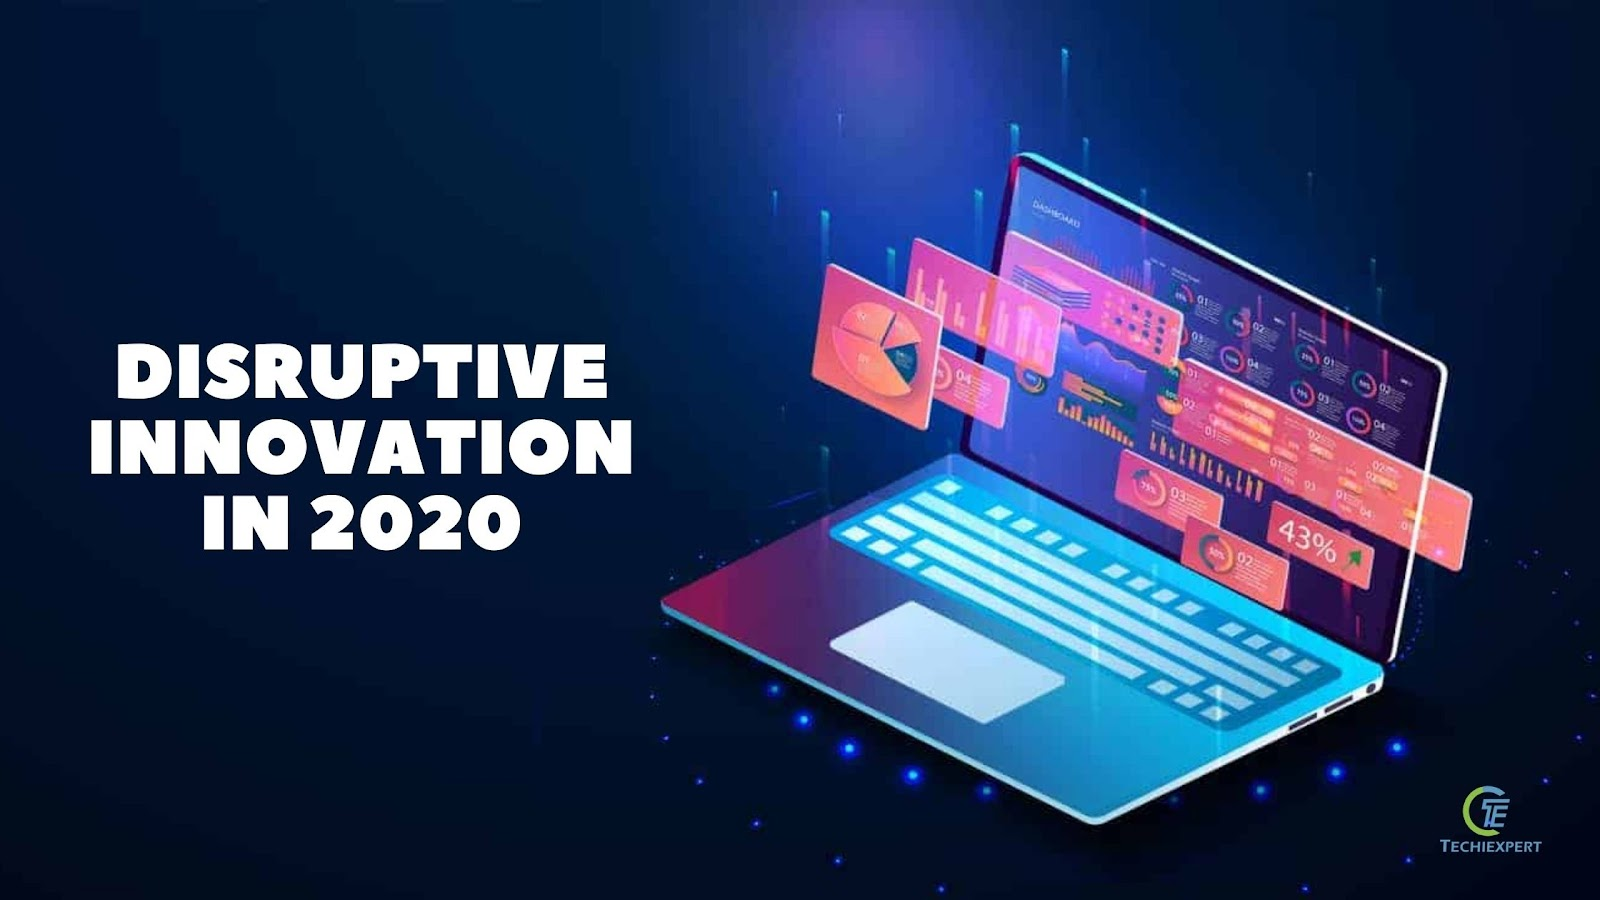 disruptive innovation in 2020